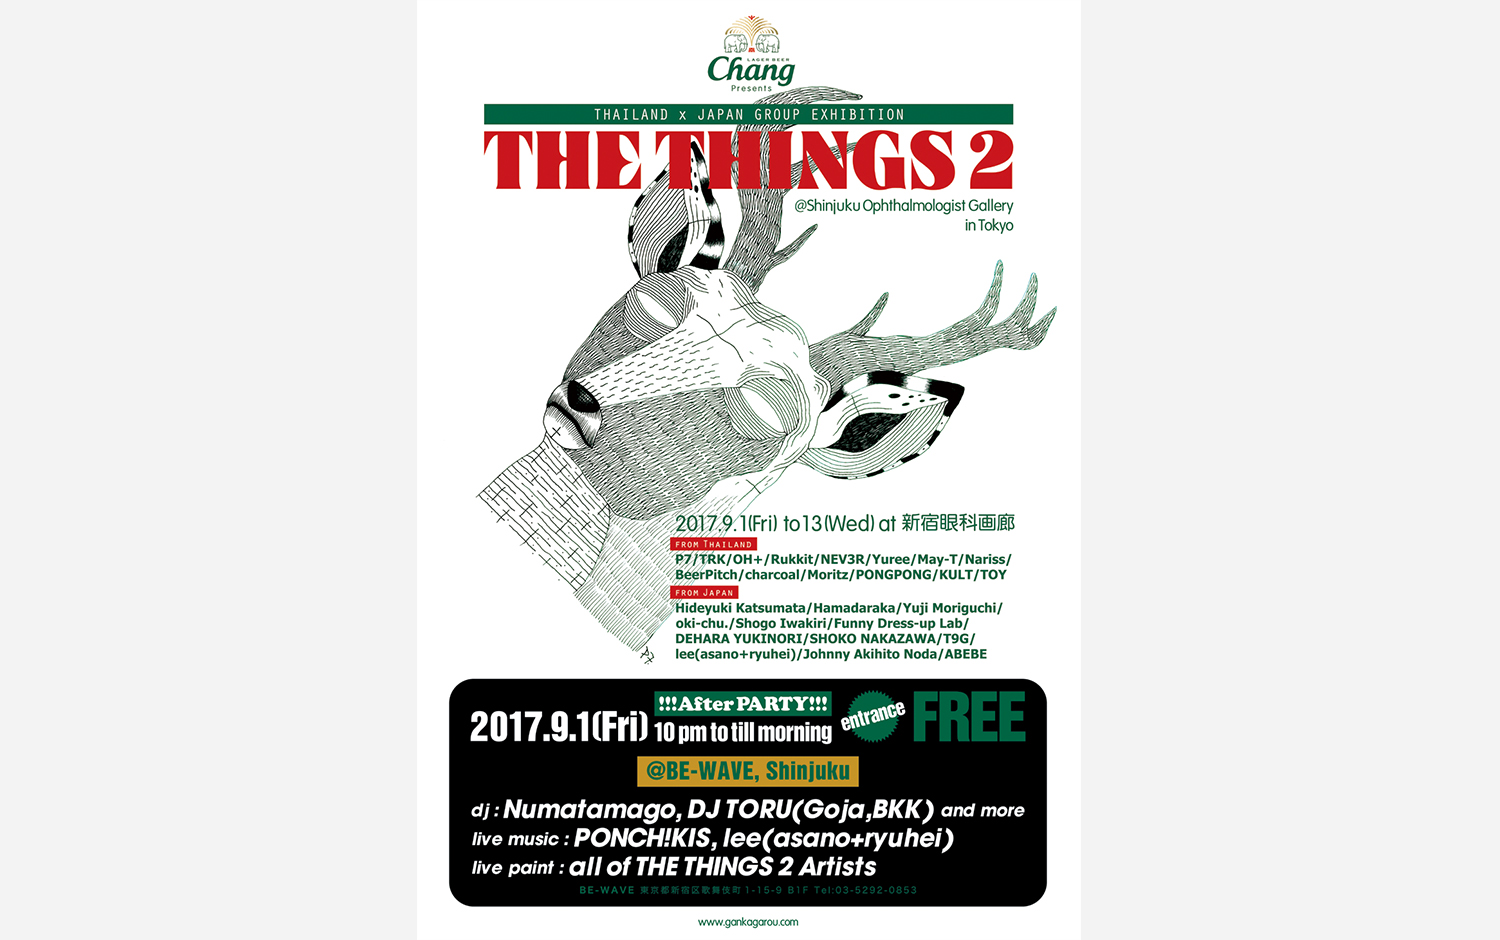 Thailand_TheThings2